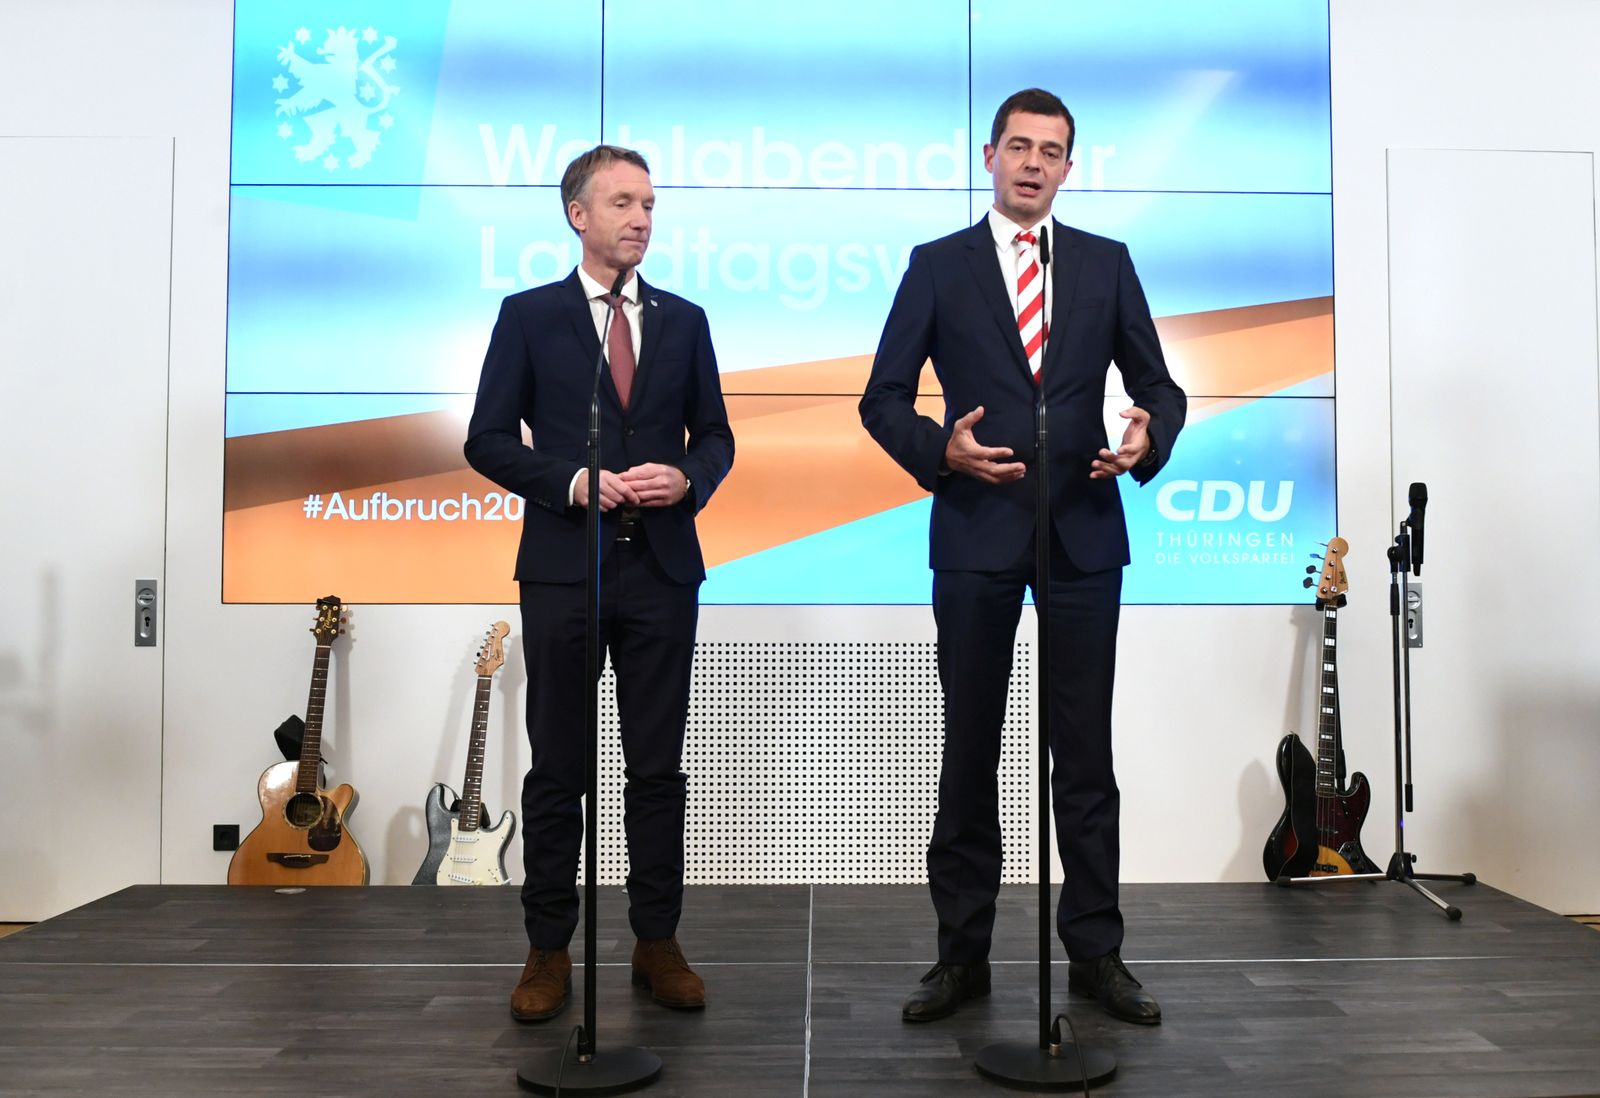 GERMANY-ELECTIONS/REACTIONS CDU